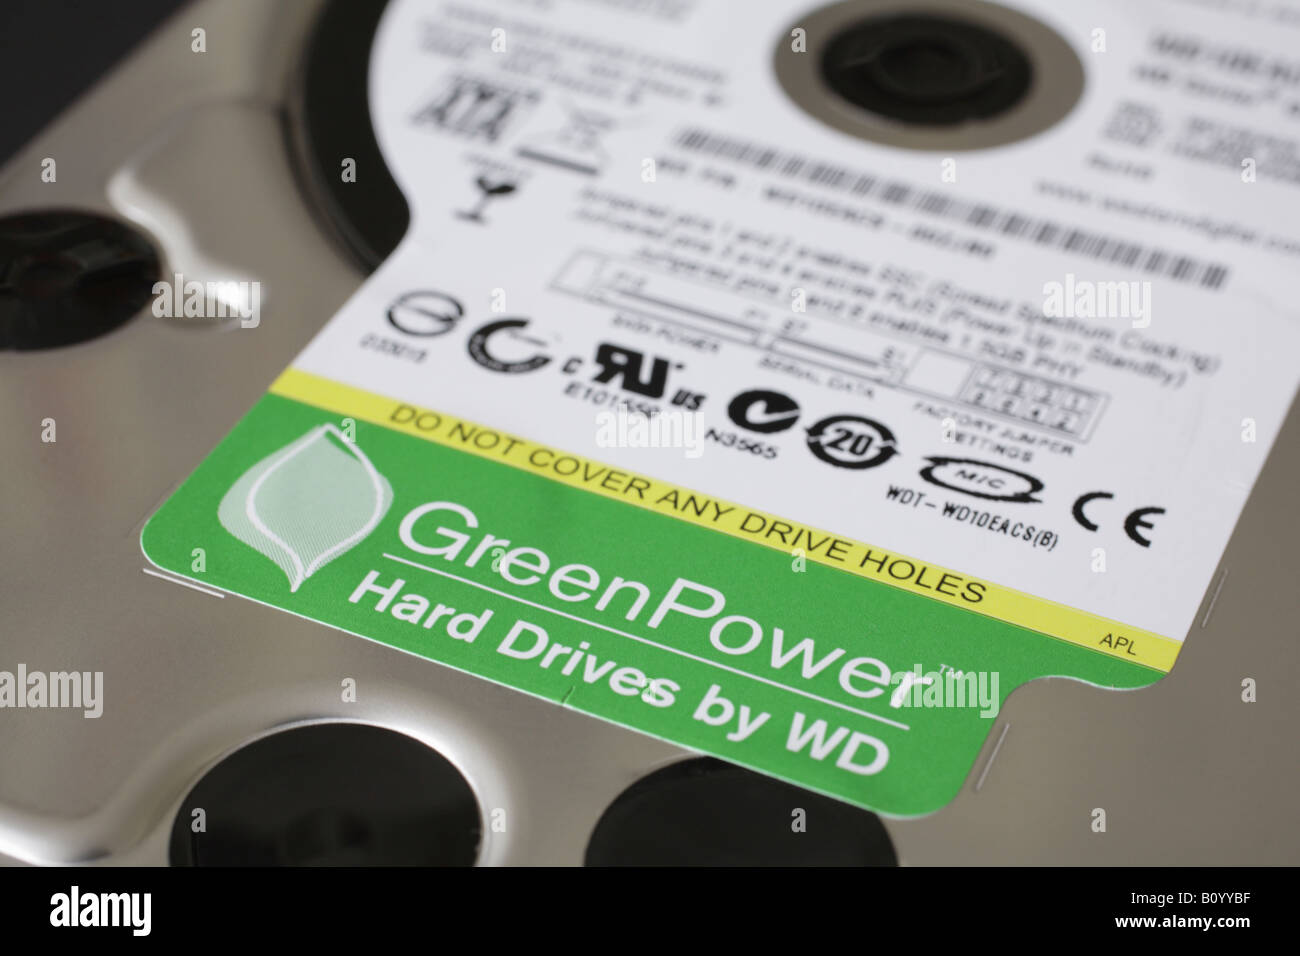 Eco friendly computing - computer hard drive with considerably ...